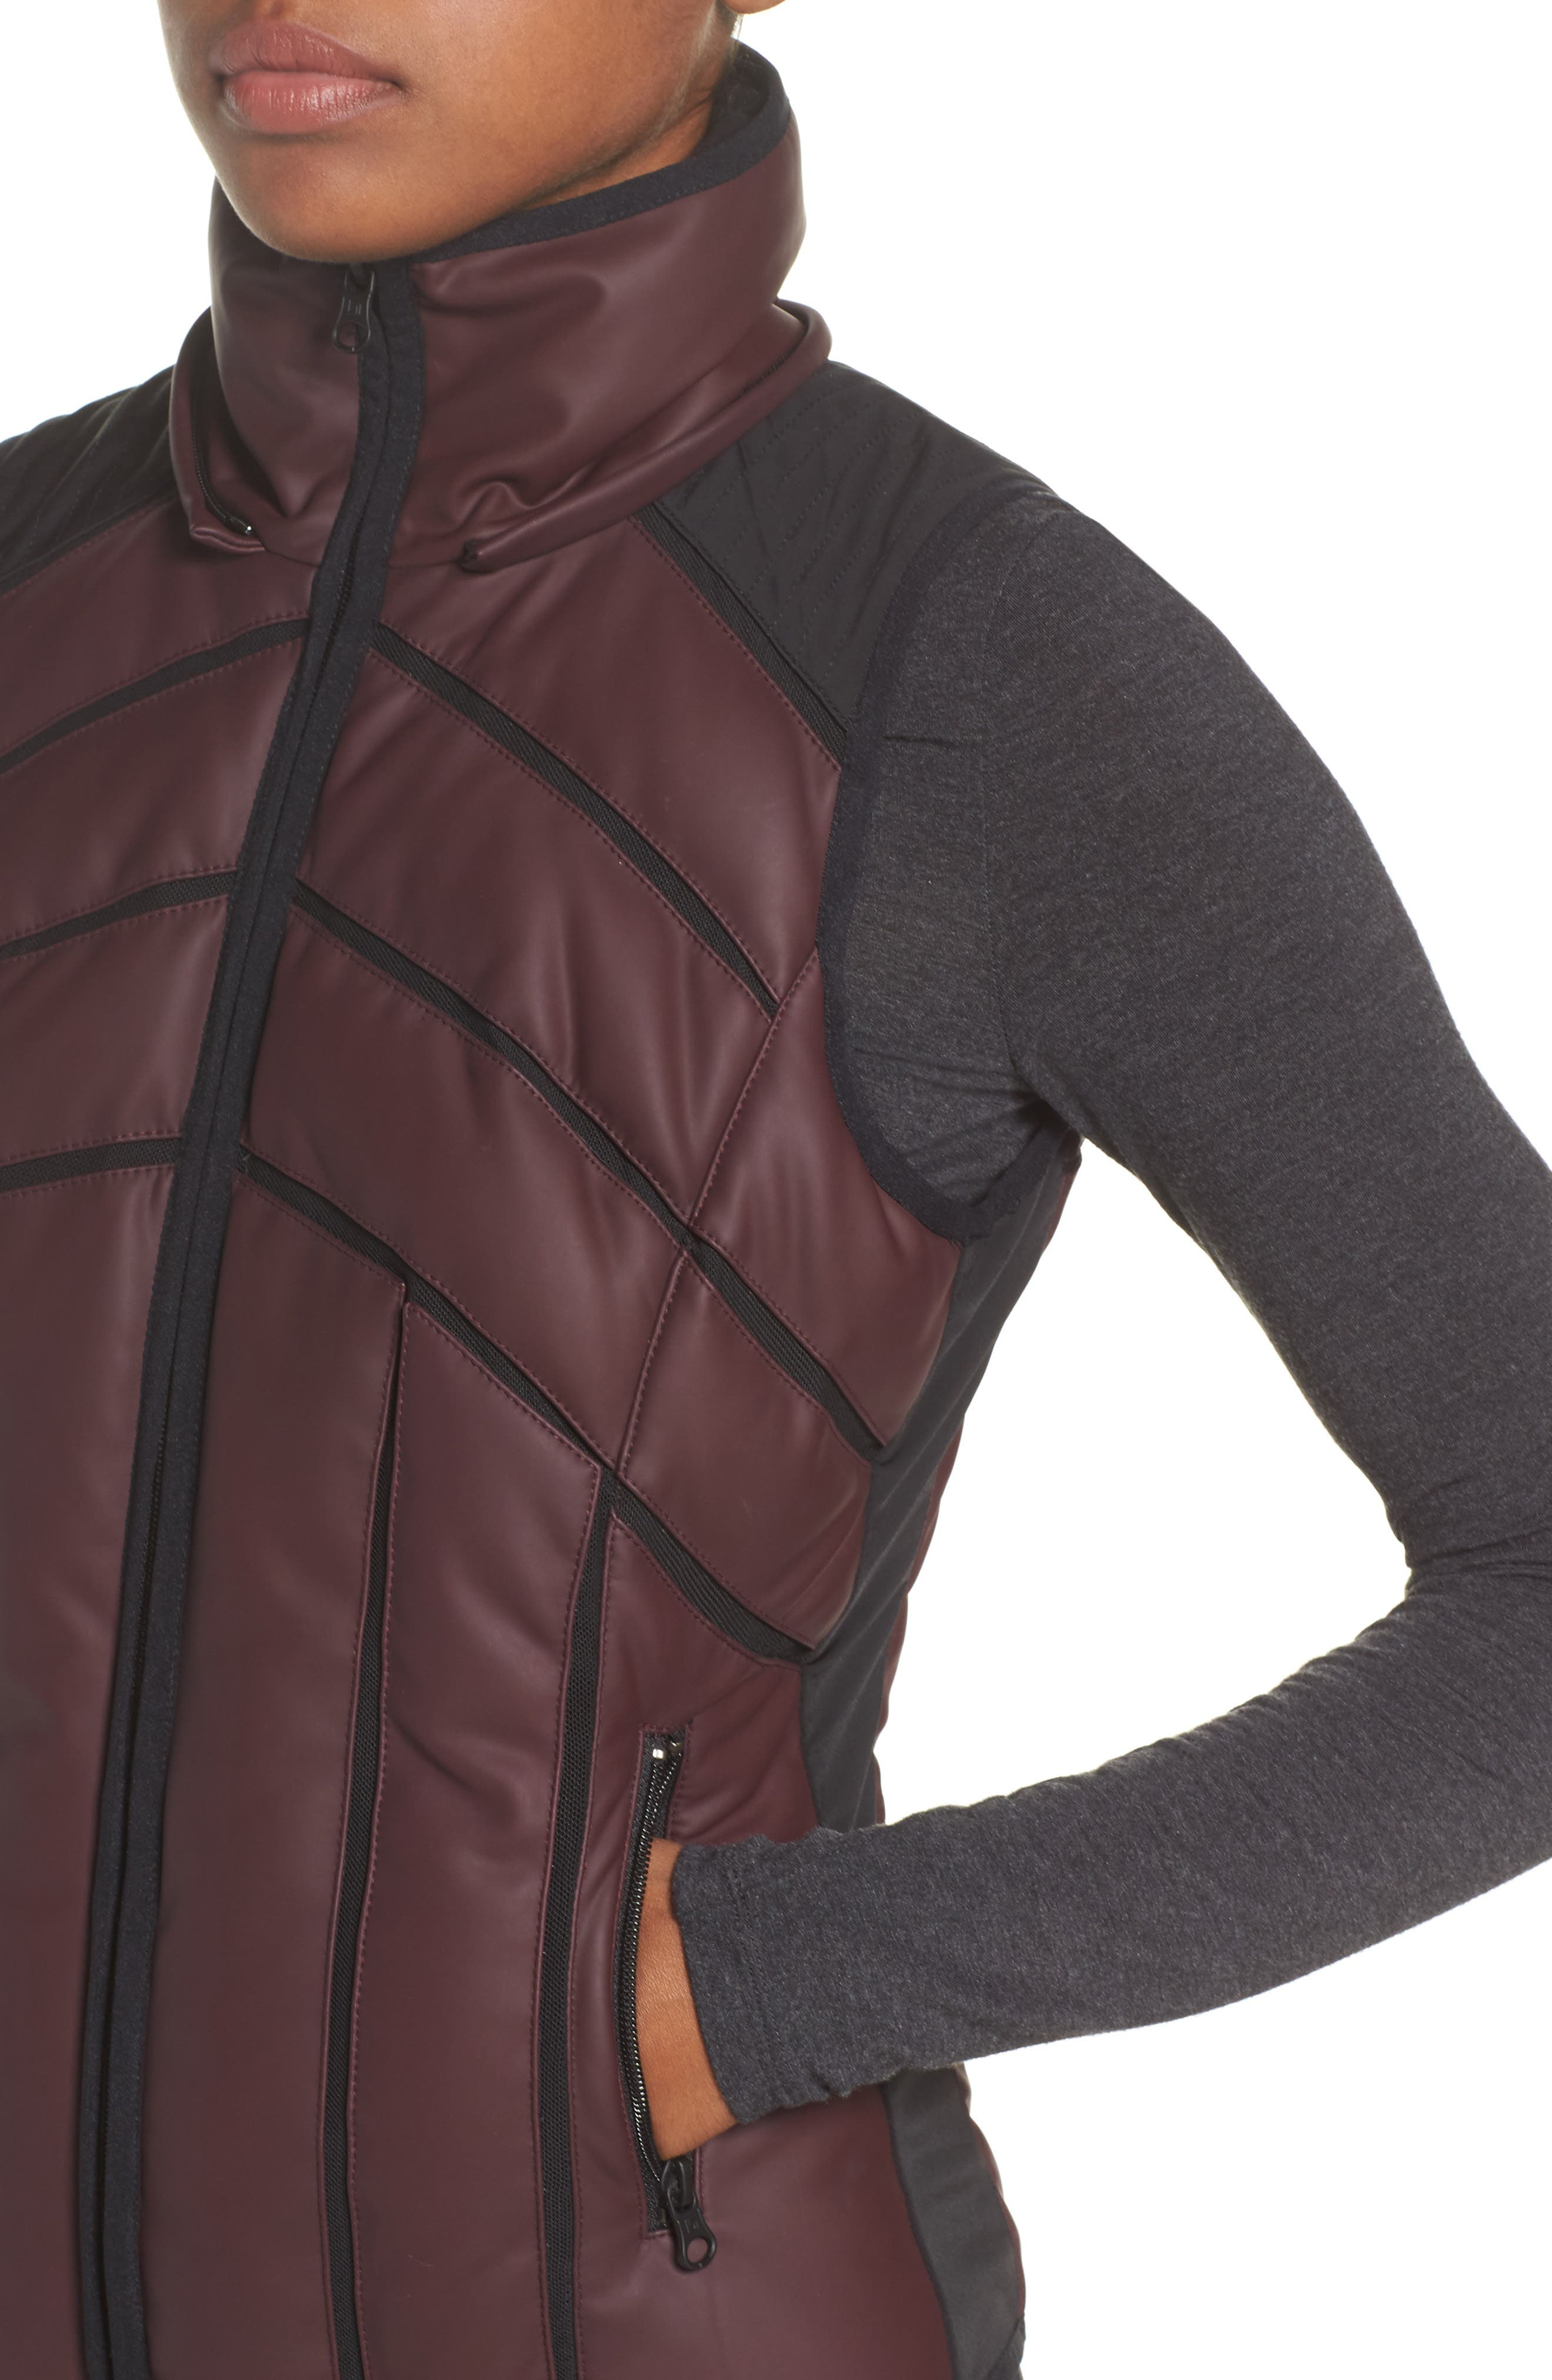 Aura Mesh Inset Vest,                             Alternate thumbnail 3, color,                             Nightshade